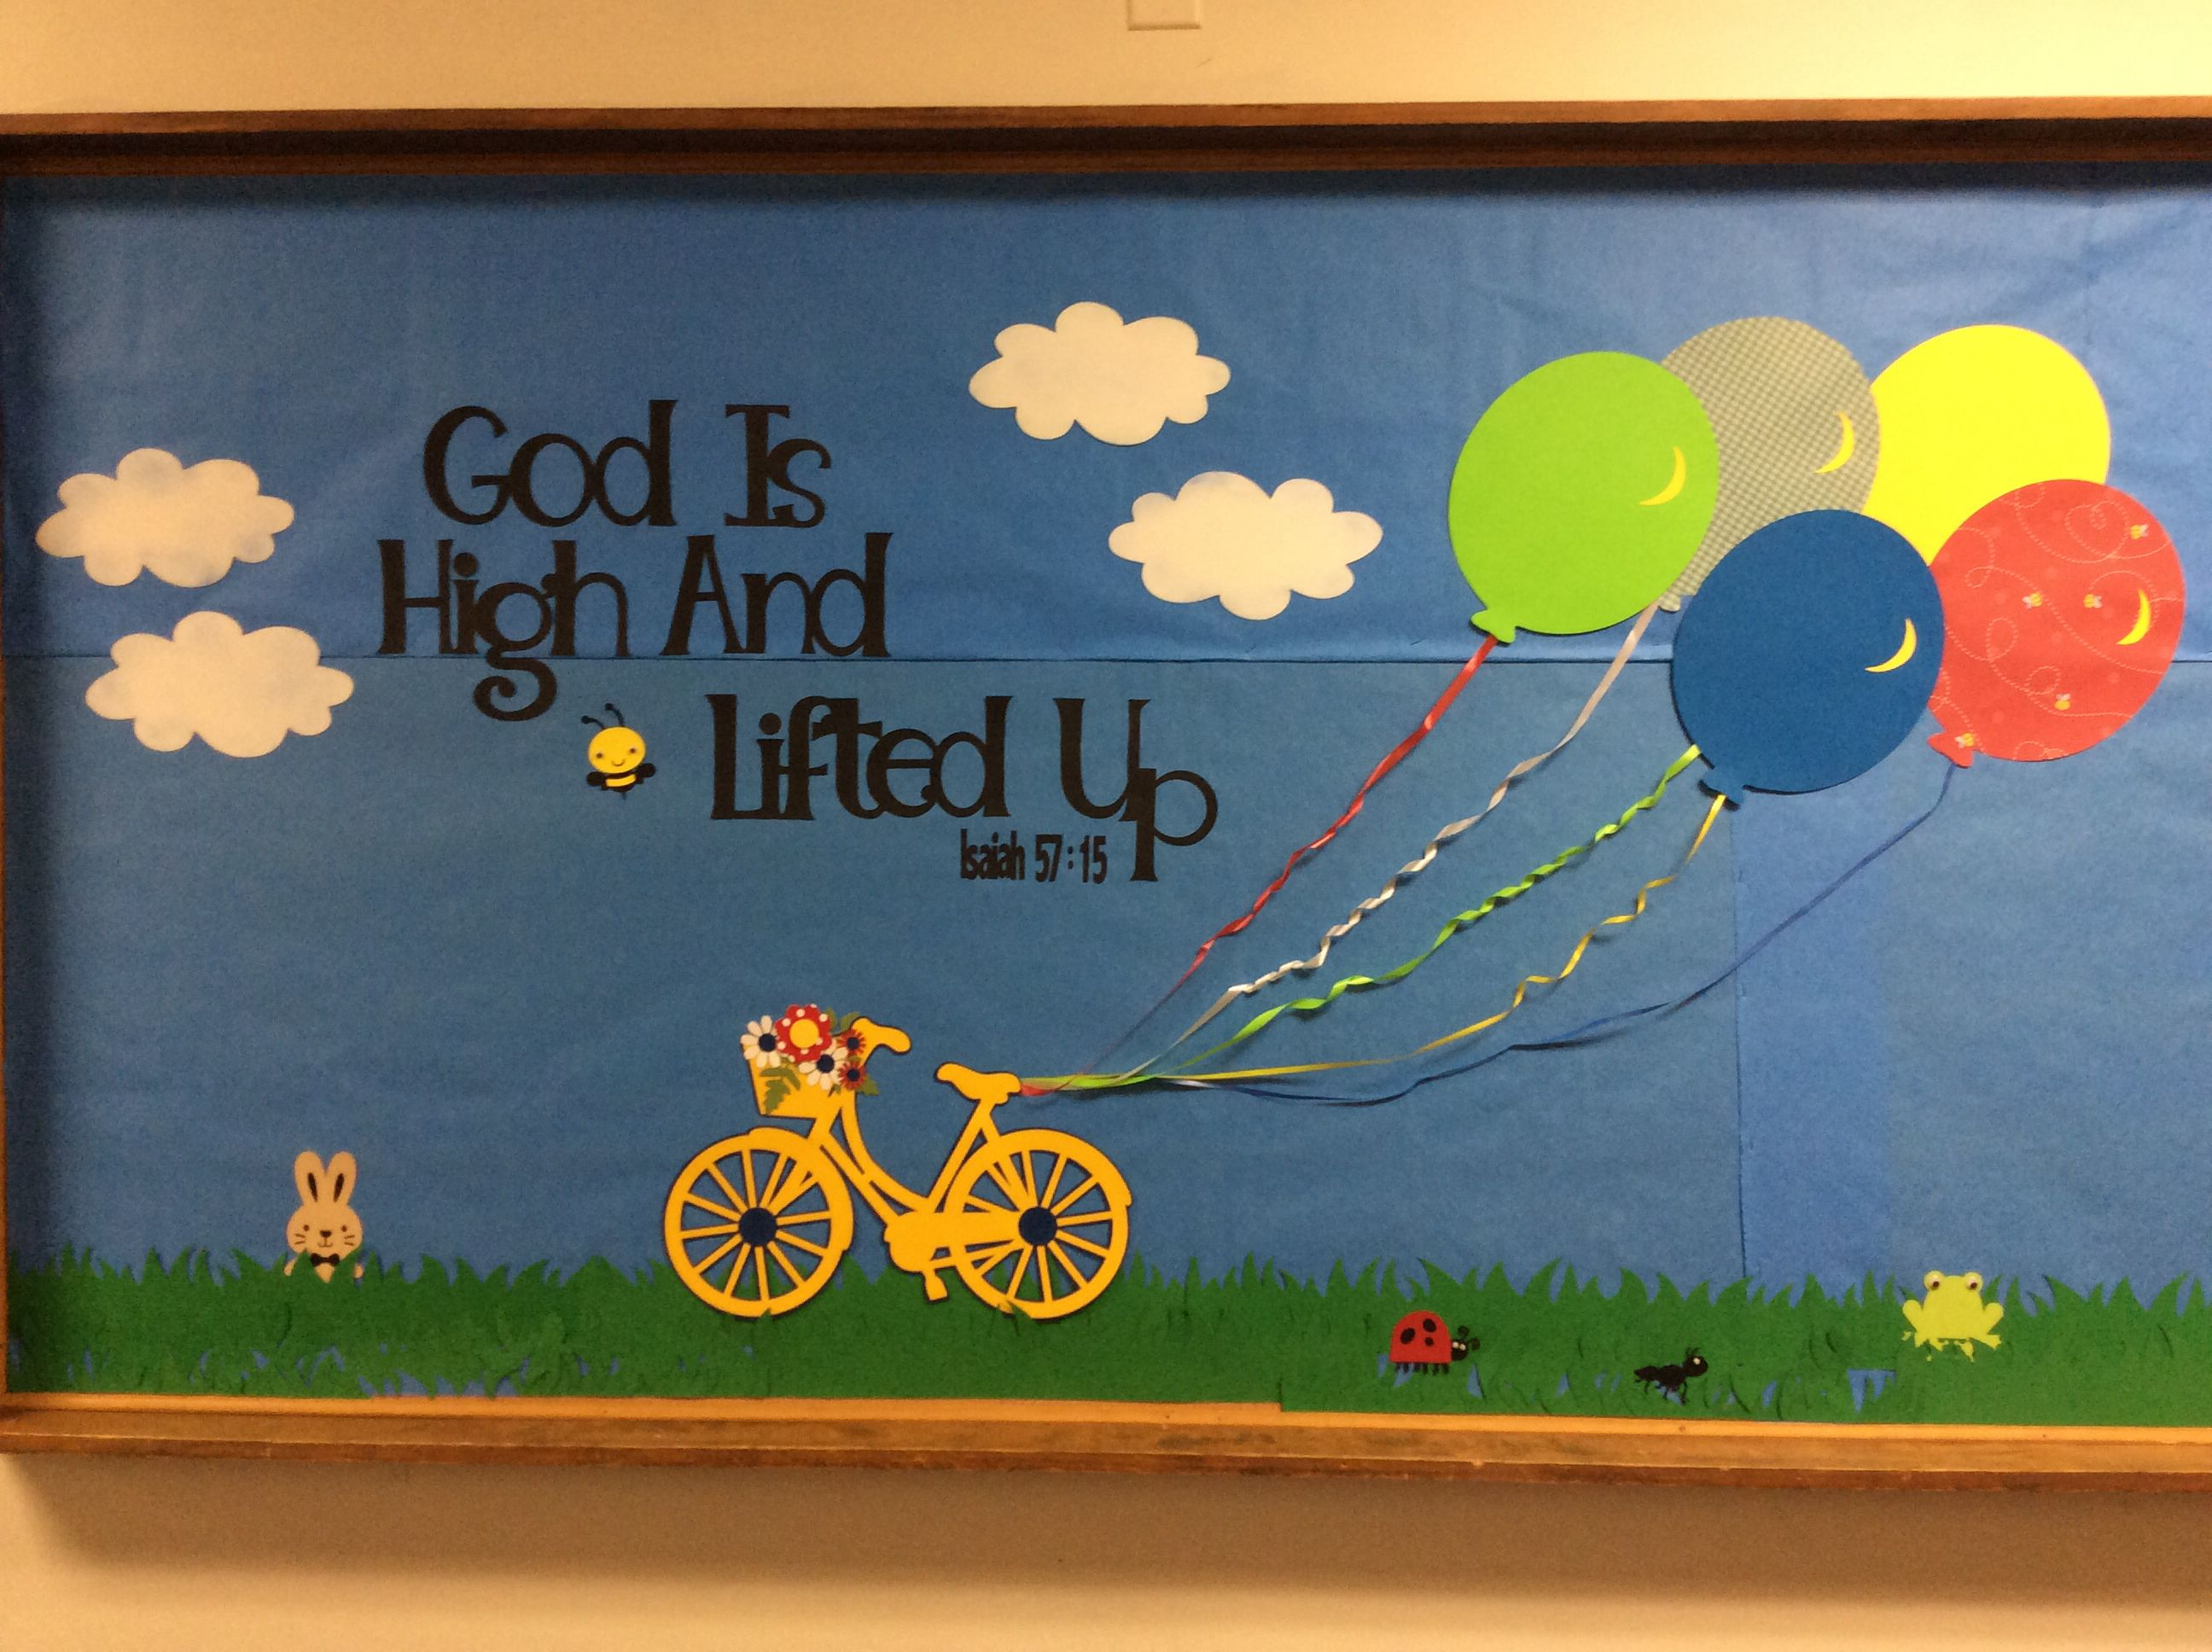 A Summertime Church Bulletin Board Isaiah 57 15 Video Games For Kids Meals Boards